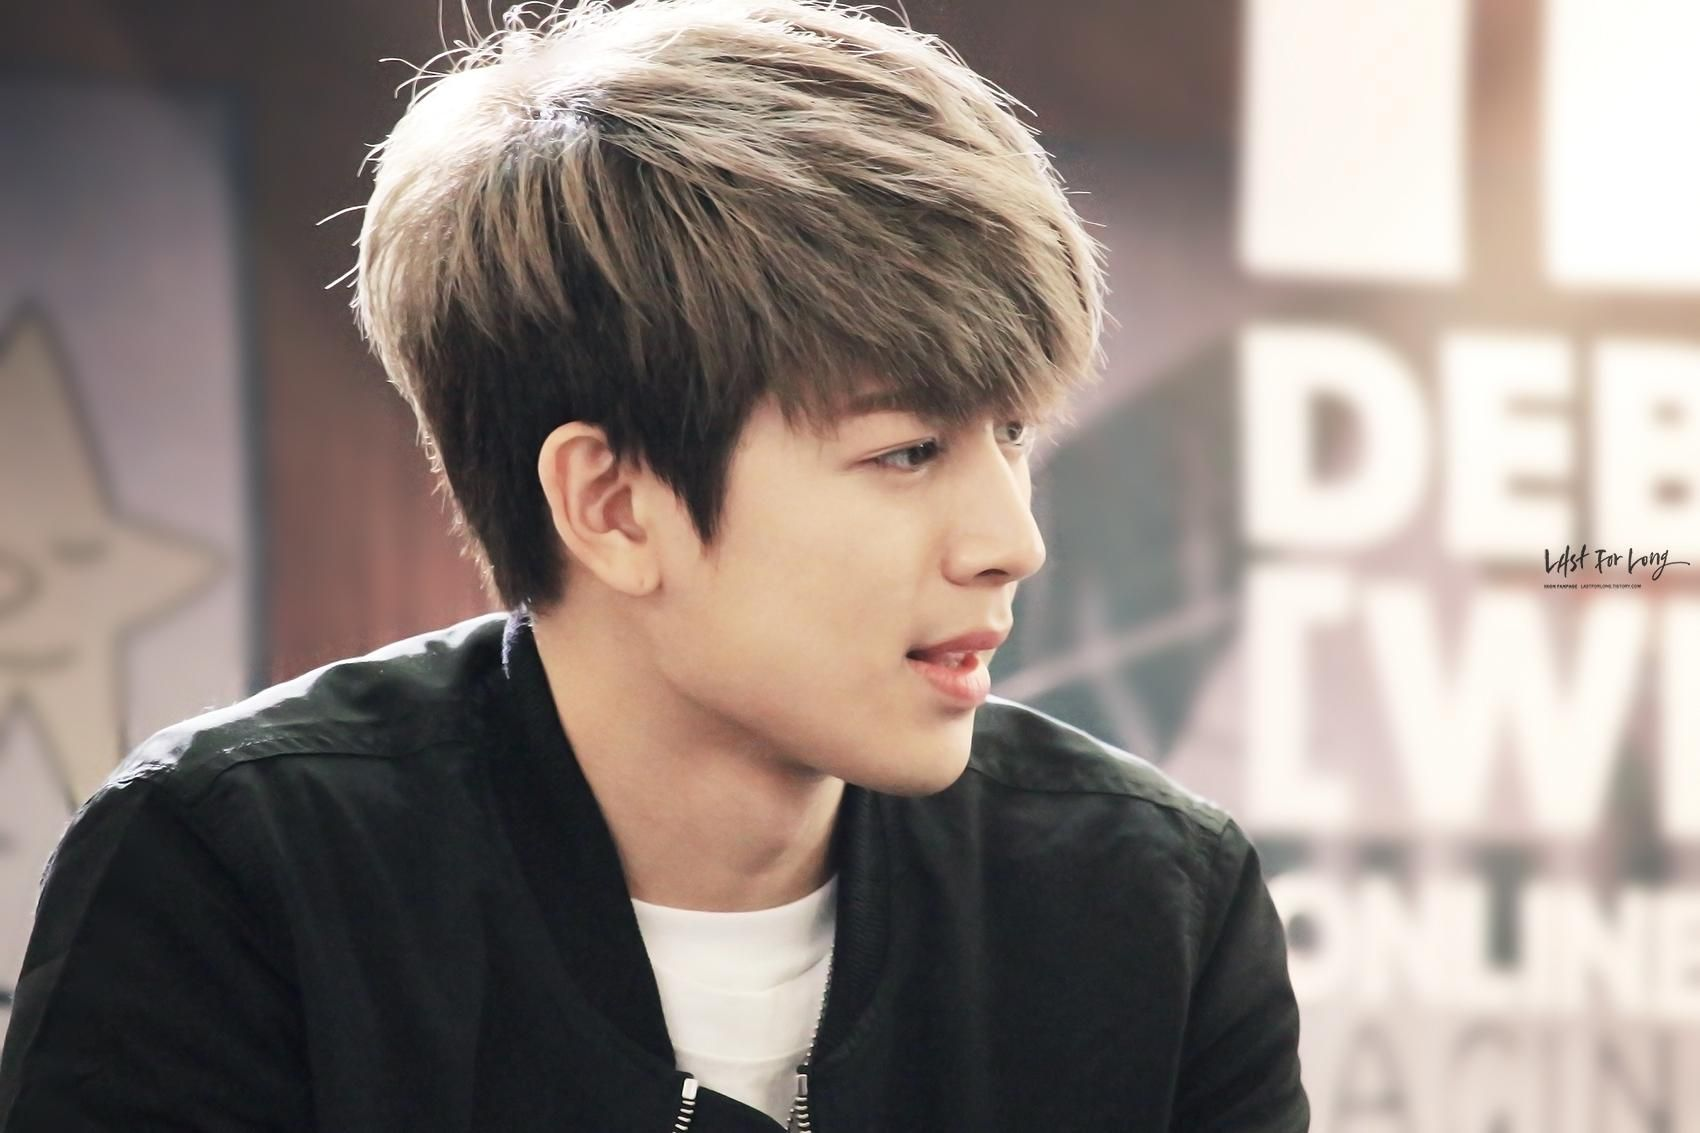 The K Pop Hairstyle